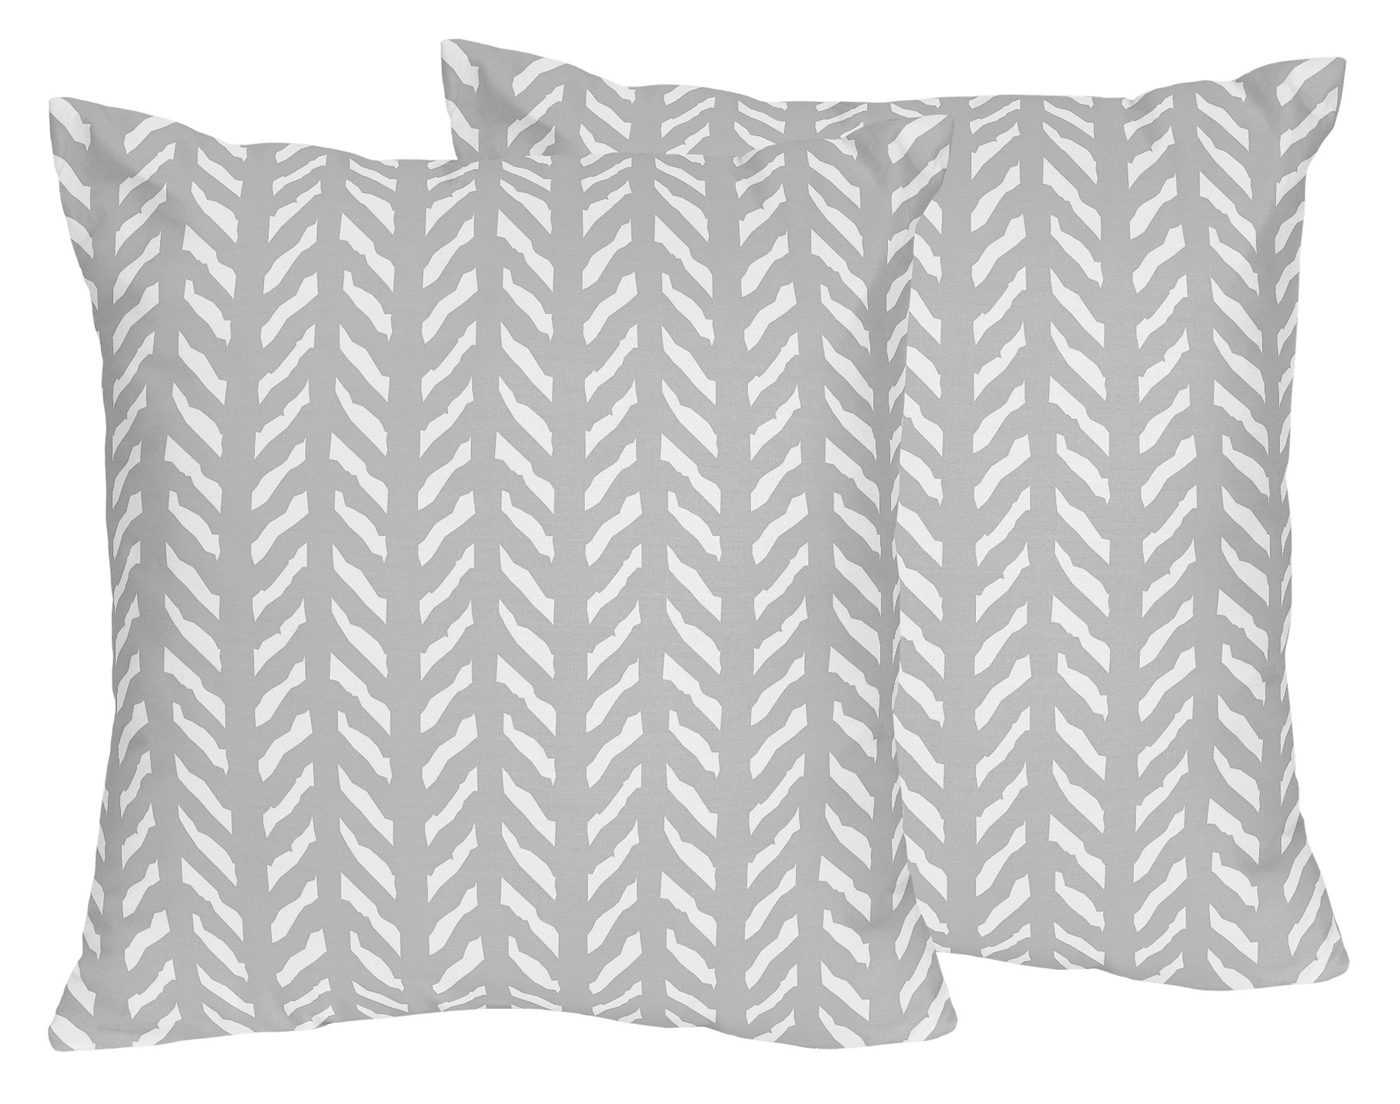 Grey And White Boho Herringbone Arrow Decorative Accent Throw Pillows For Gray Woodland Forest Friends Collection By Sweet Jojo Designs Set Of 2 Only 46 99